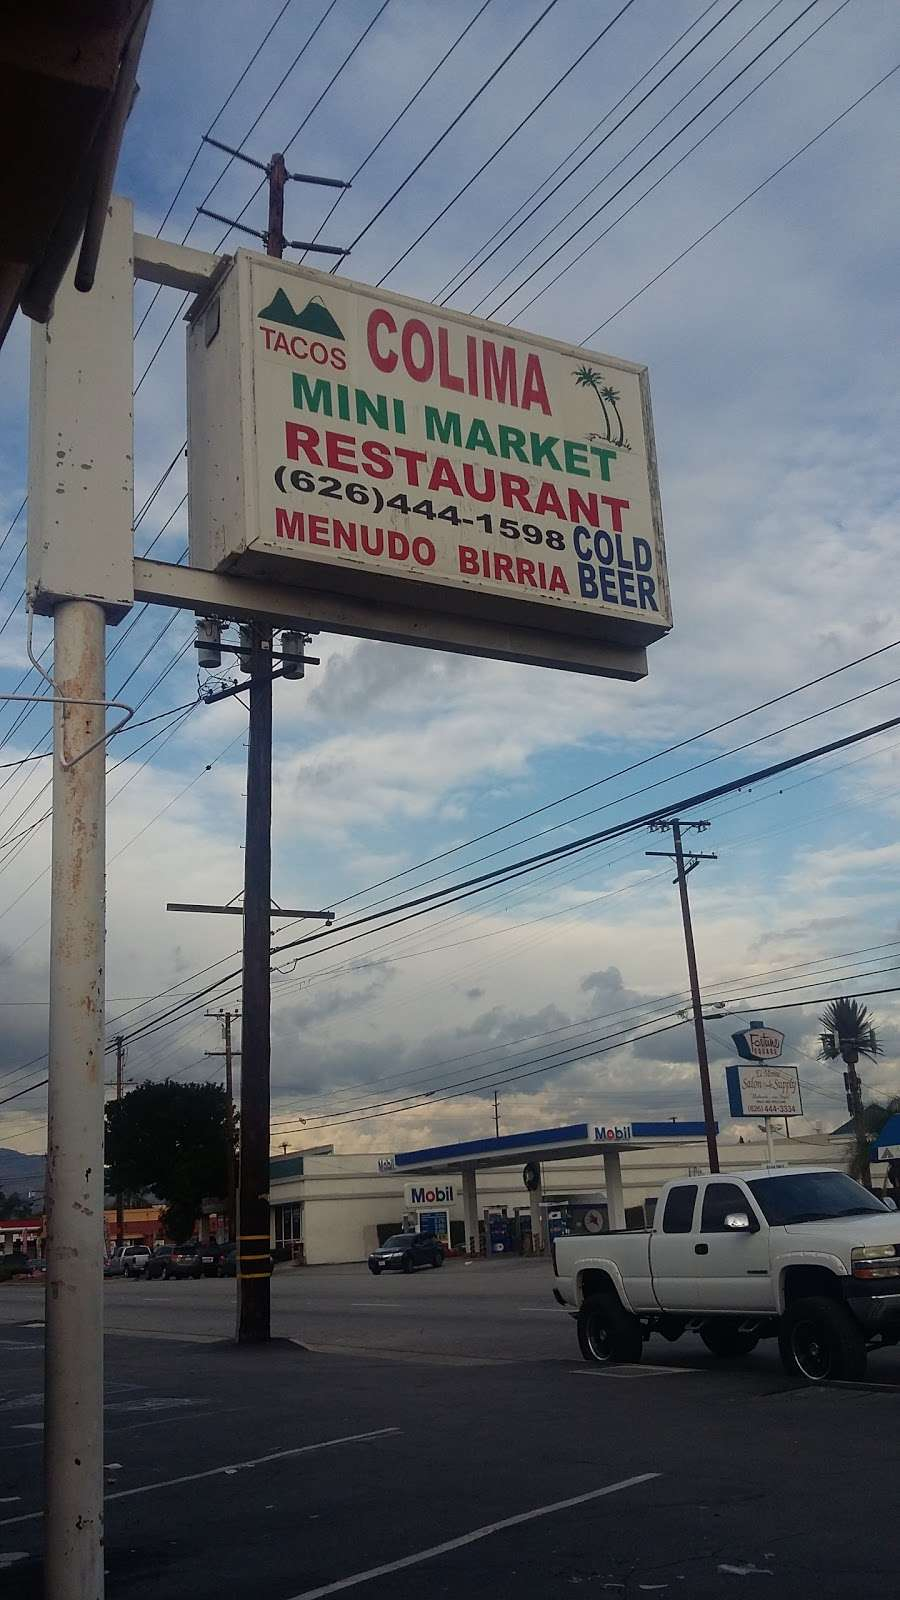 Restaurant Mexican Food - restaurant  | Photo 8 of 9 | Address: 4711 Peck Rd, El Monte, CA 91732, USA